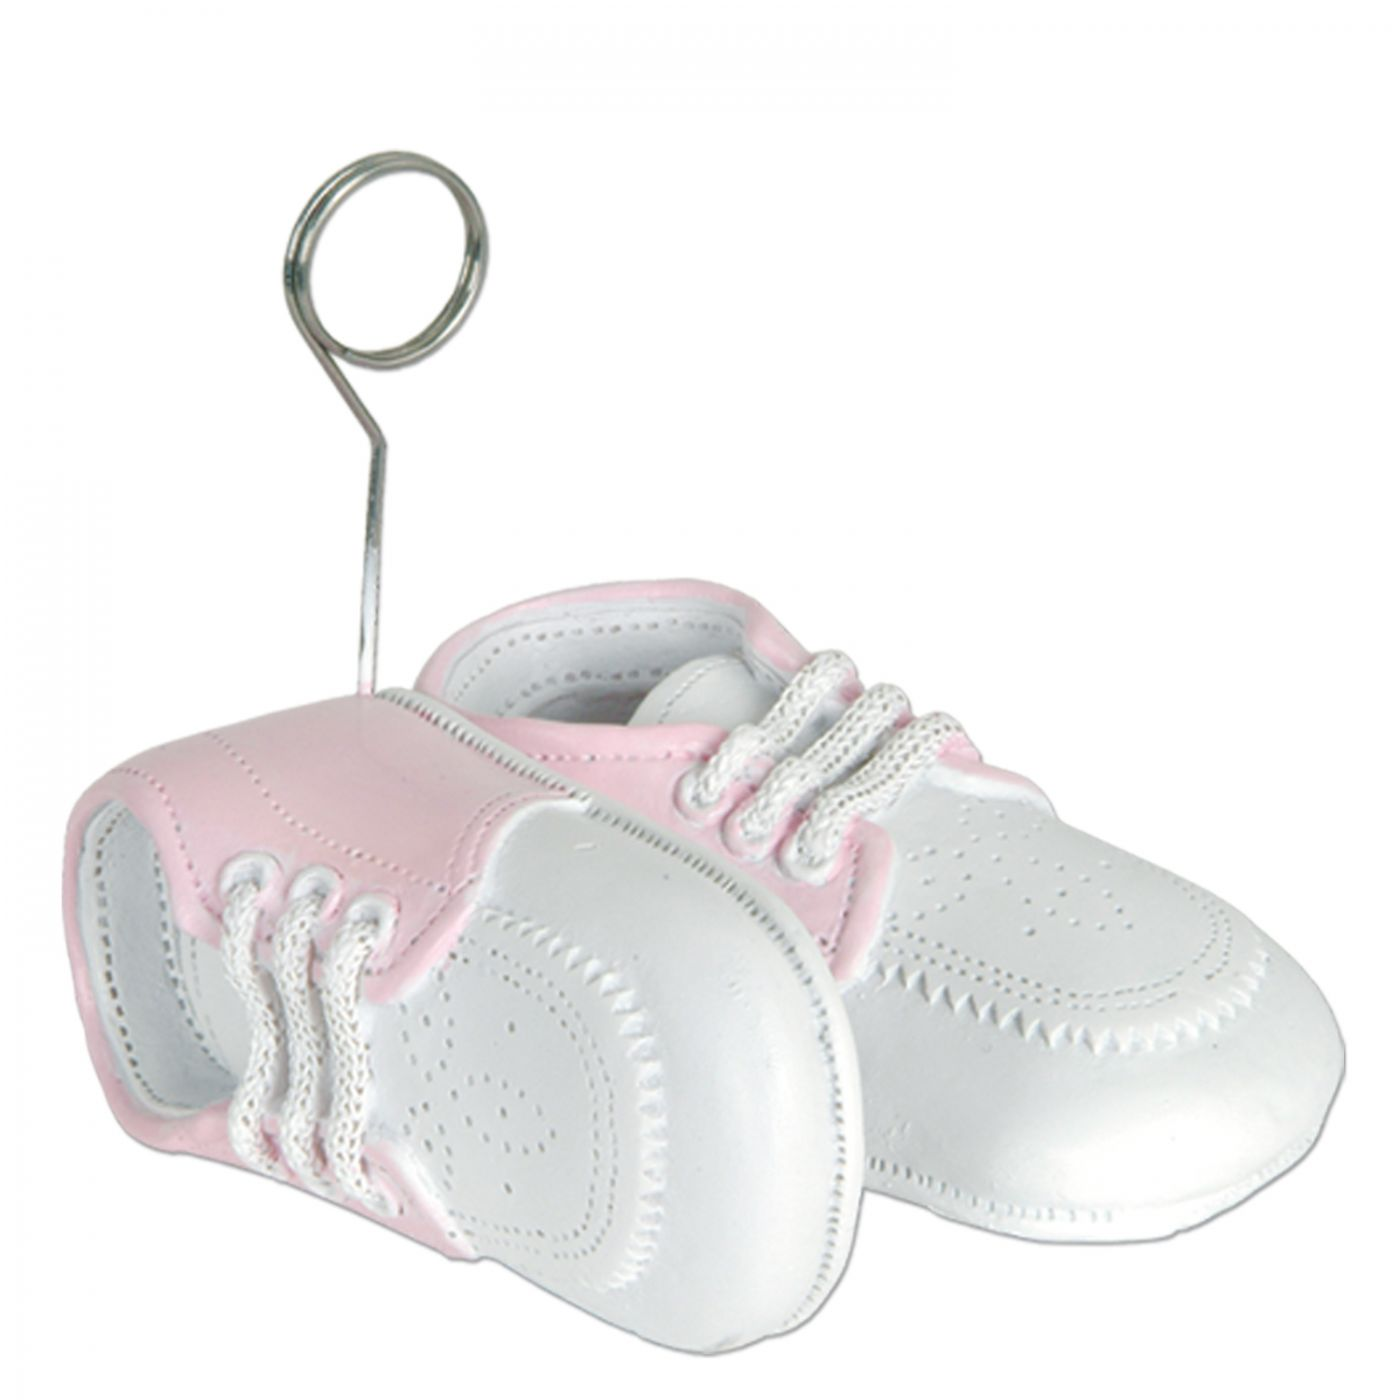 Image of Baby Shoes Photo/Balloon Holder (6)